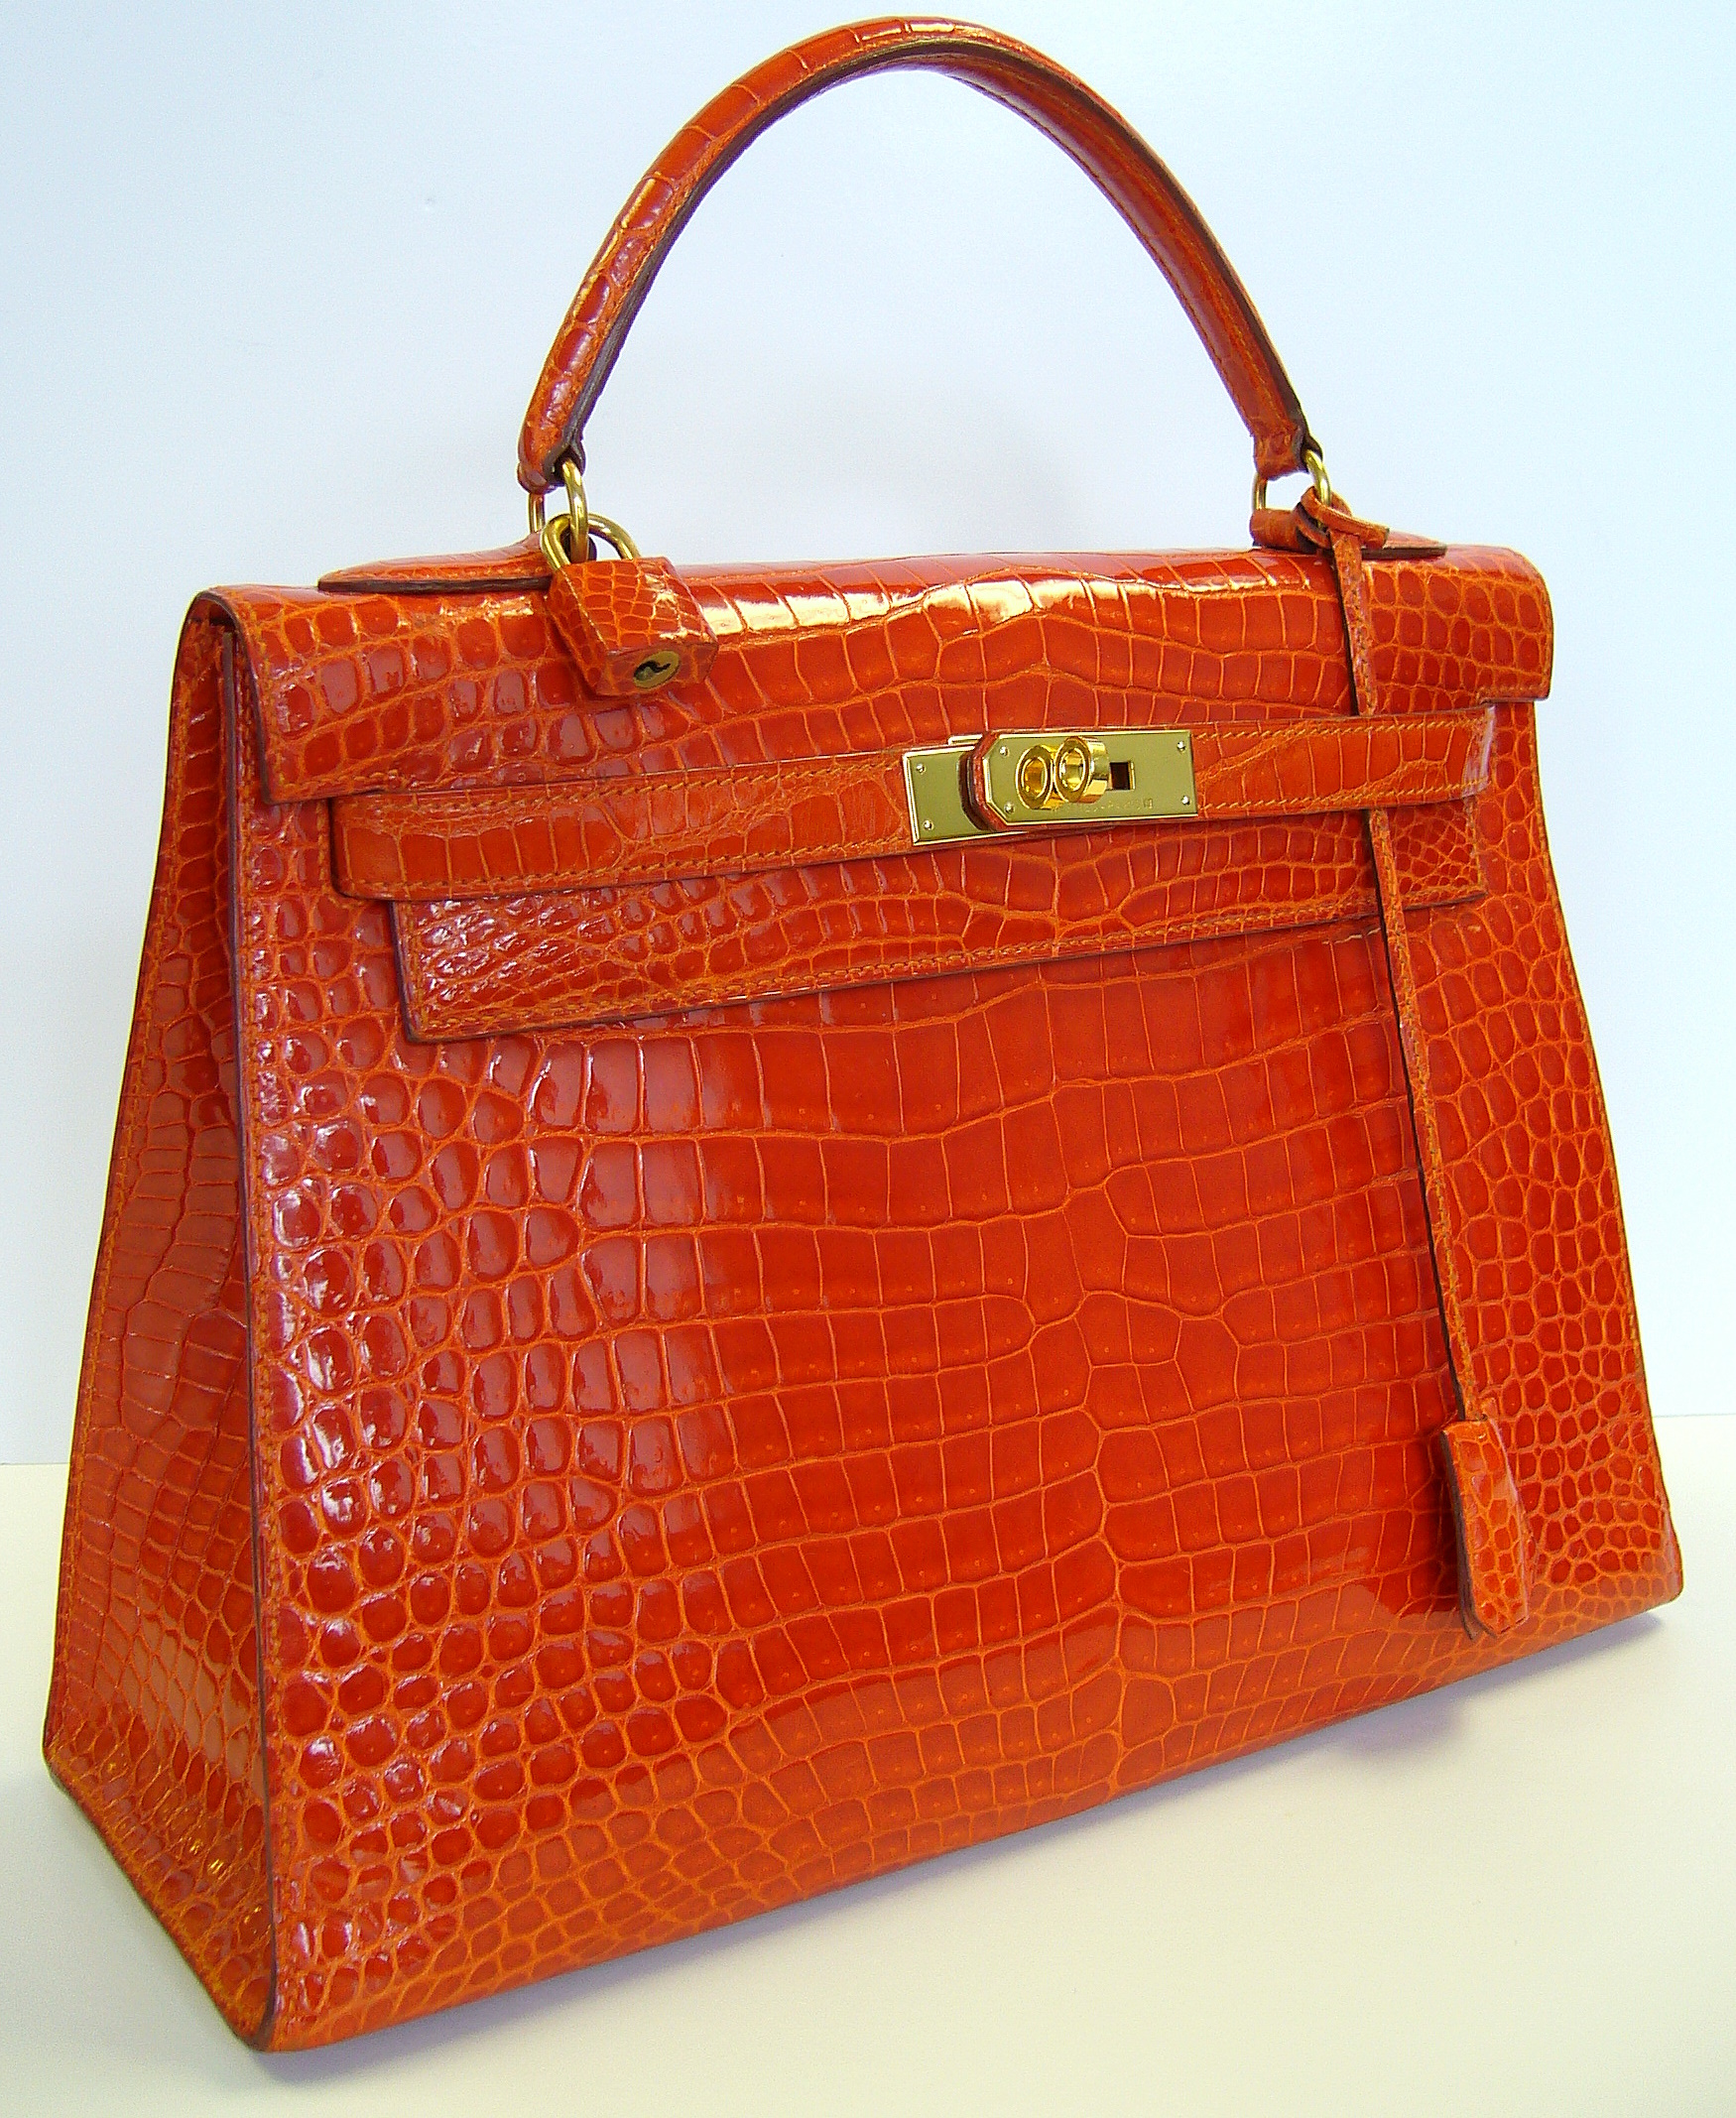 Hermes Chanel Dior And More Visit Handbag Heaven At The Perfect Purse In Southampton